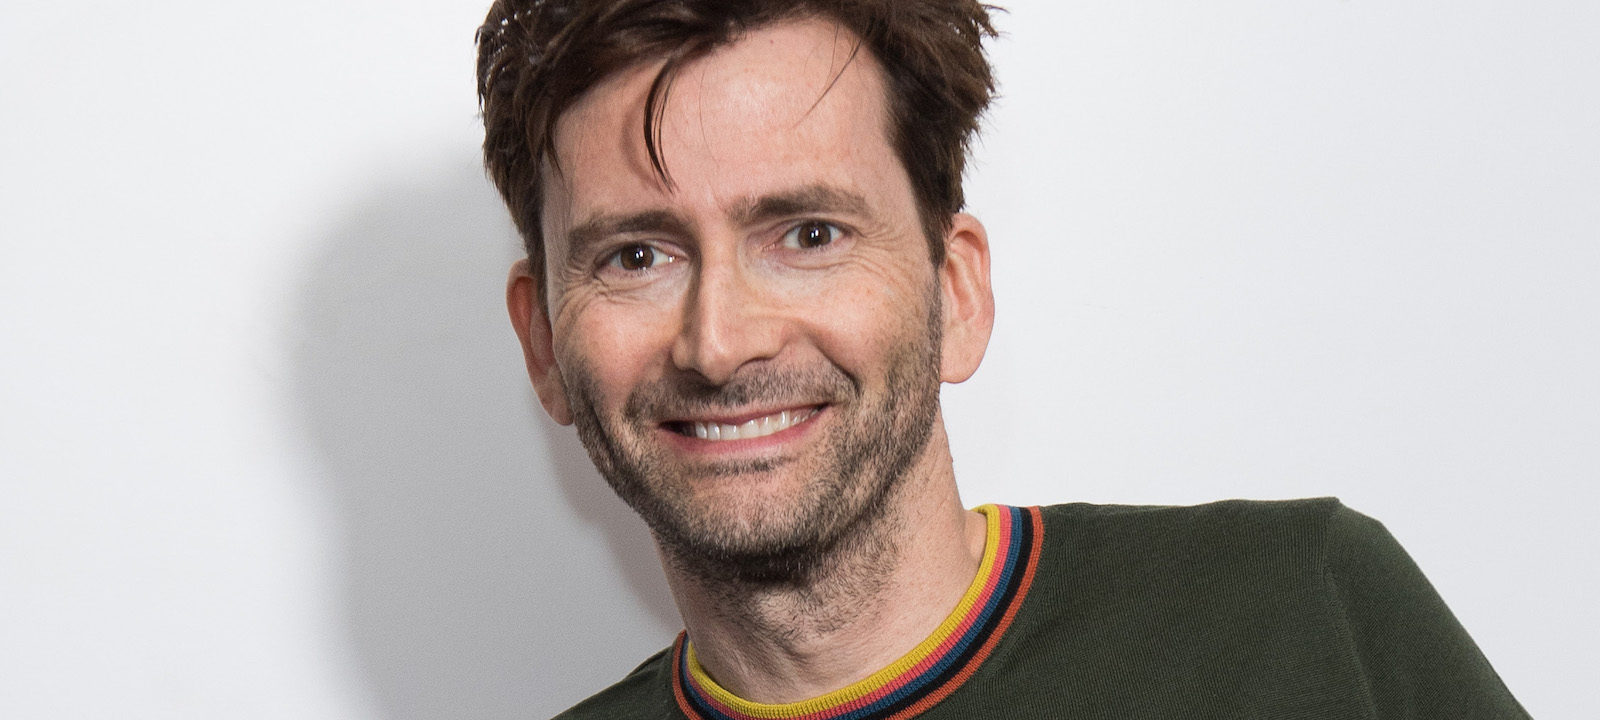 David Tennant attends a preview of Baby Cow productions new Channel 4 comedy 'High & Dry' at BFI Southbank on March 5, 2018 in London, England.